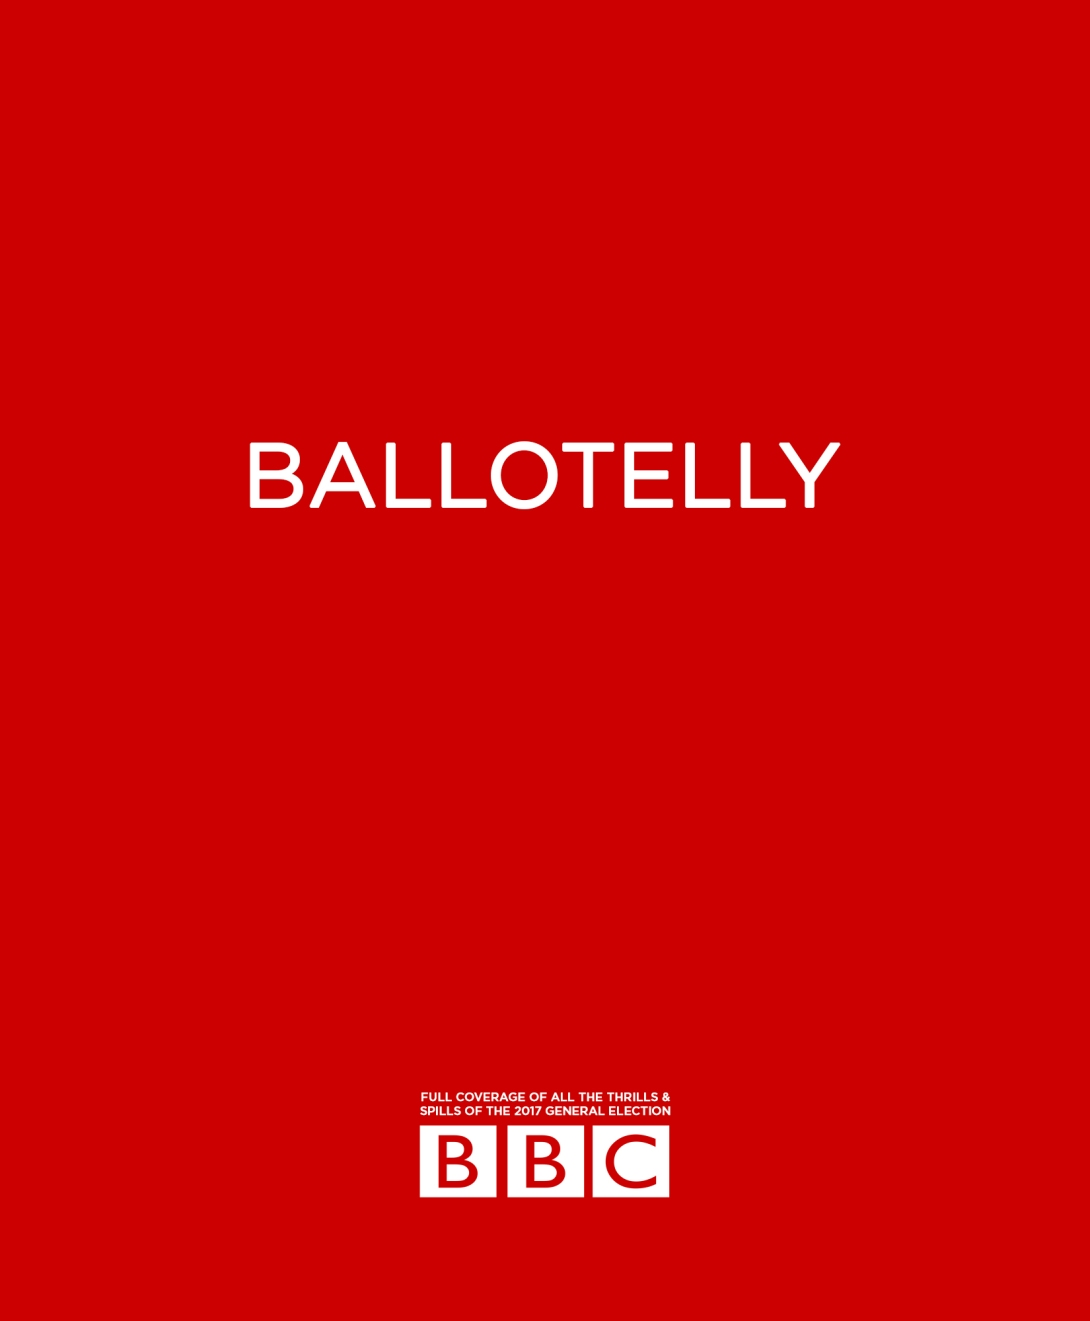 Advertising idea for the BBC's coverage of the UK general election 2017